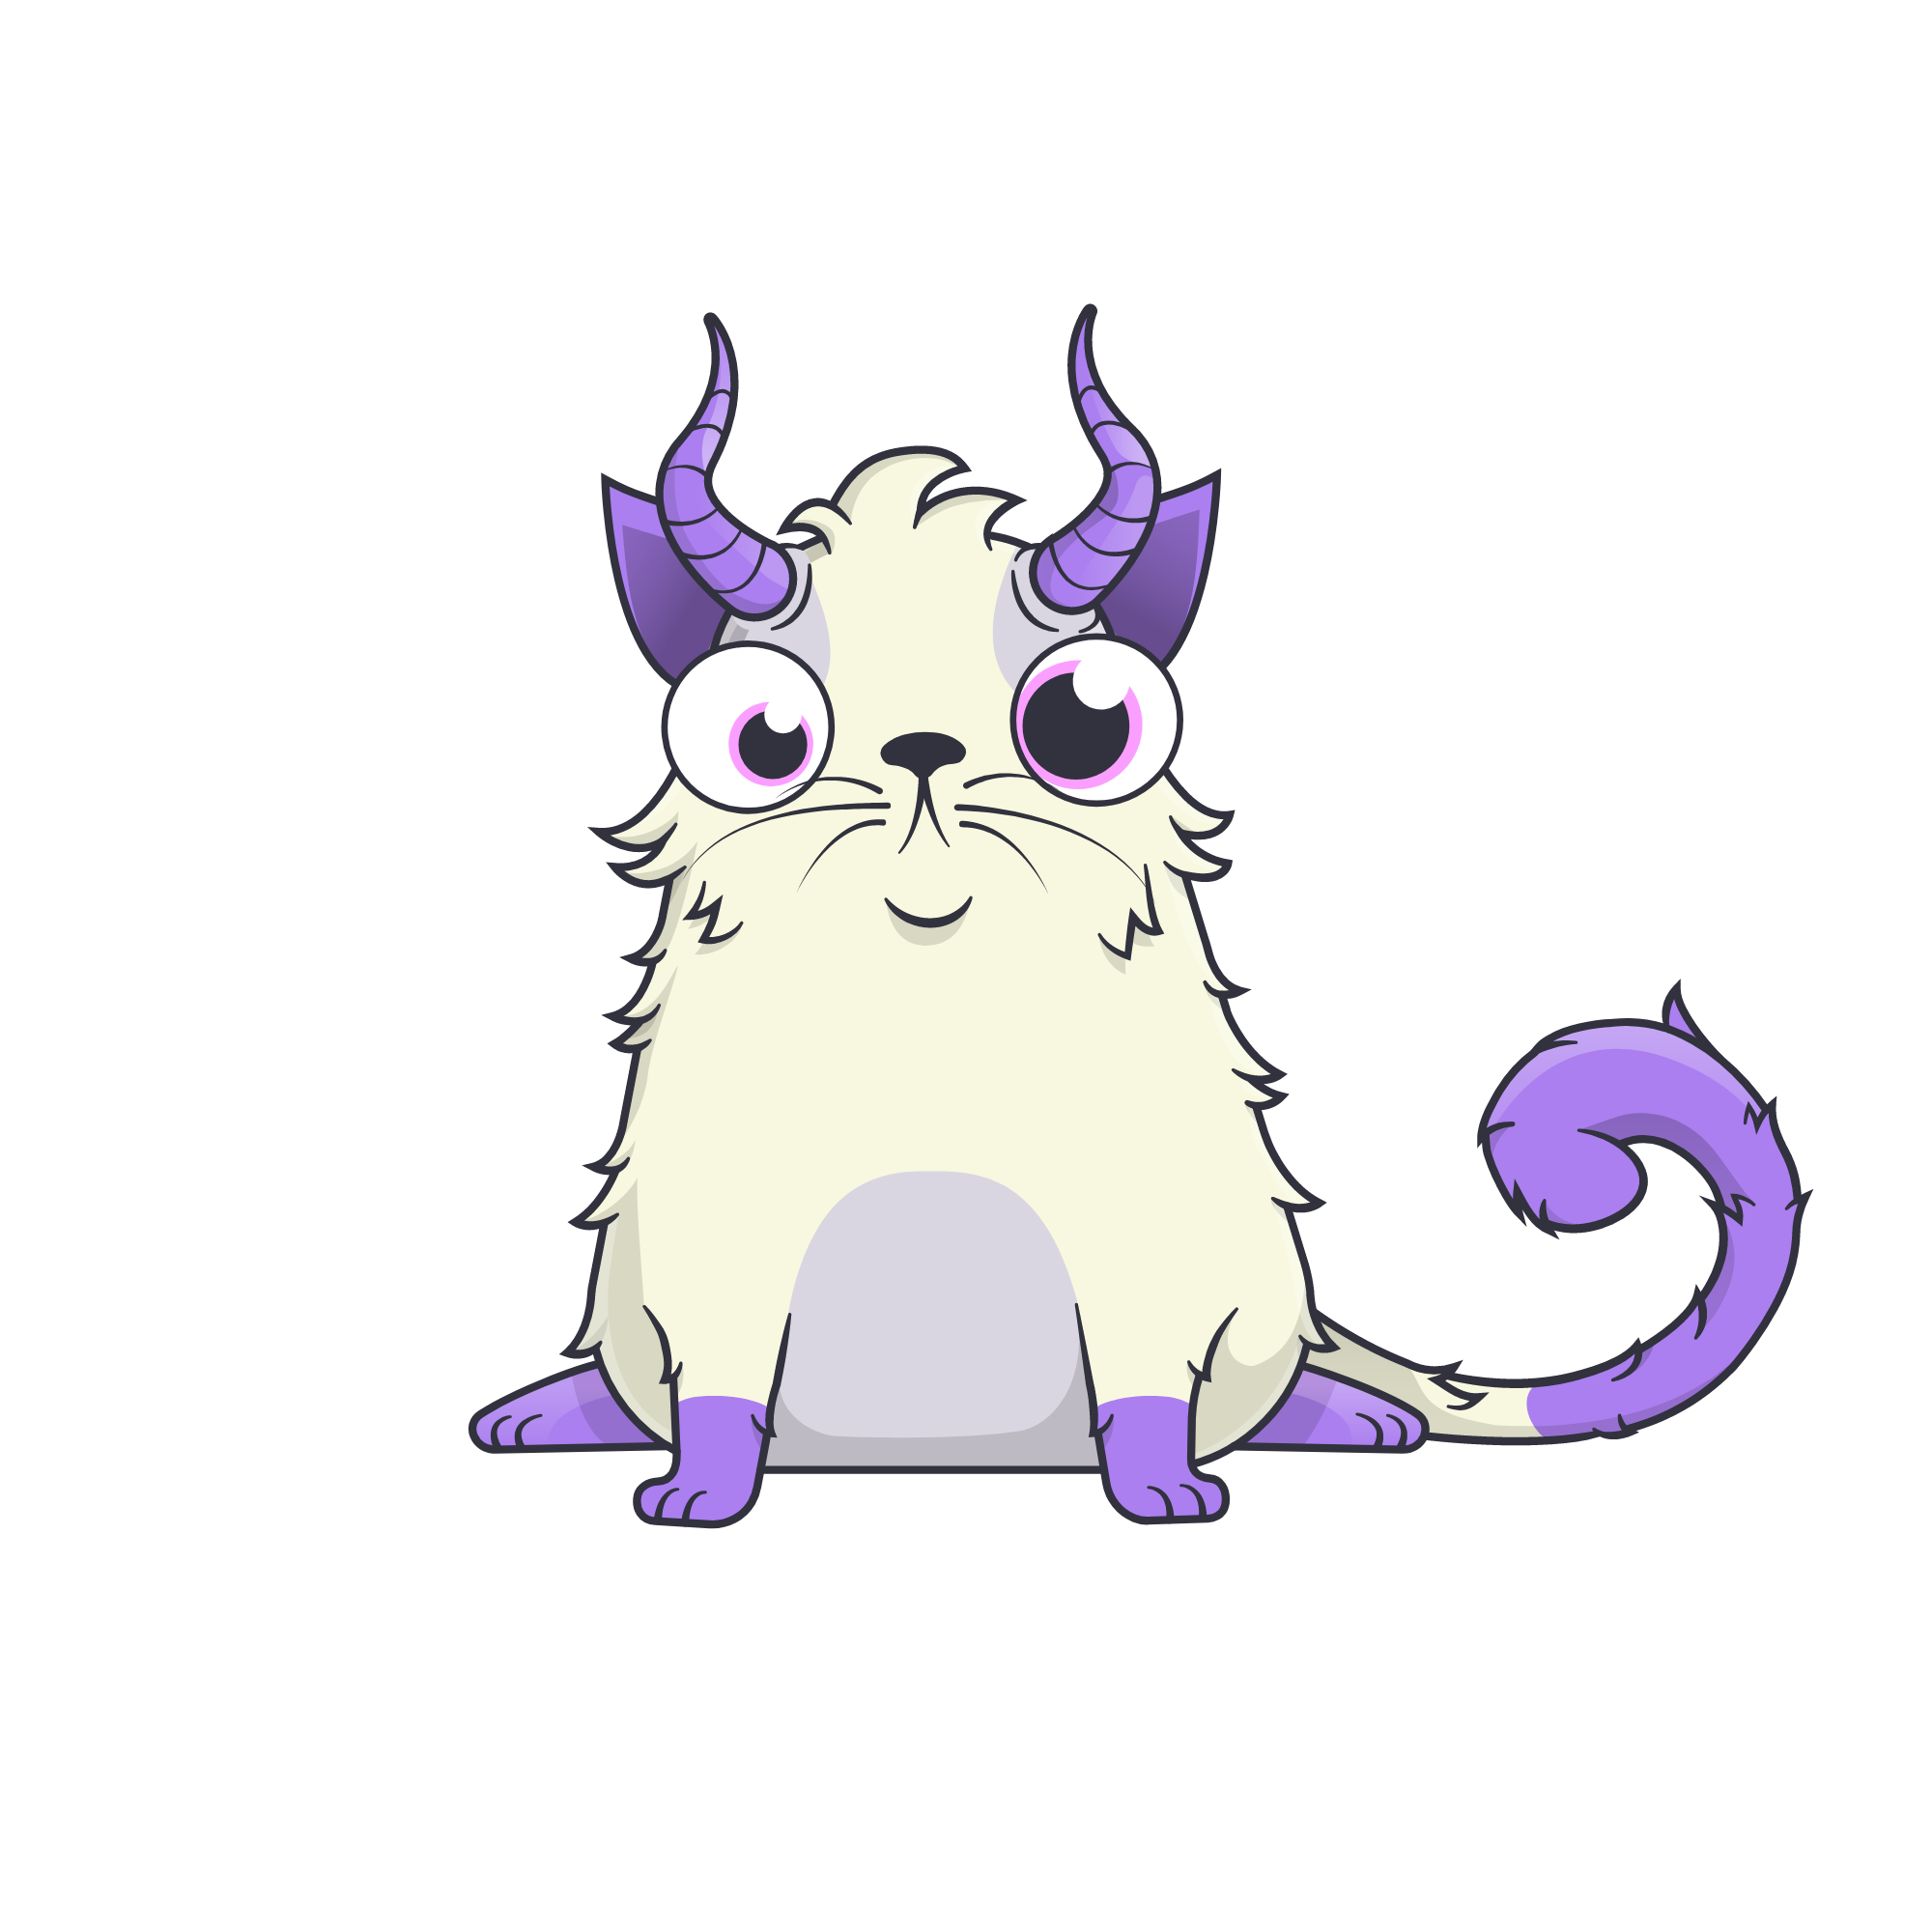 cryptokitty #1742854